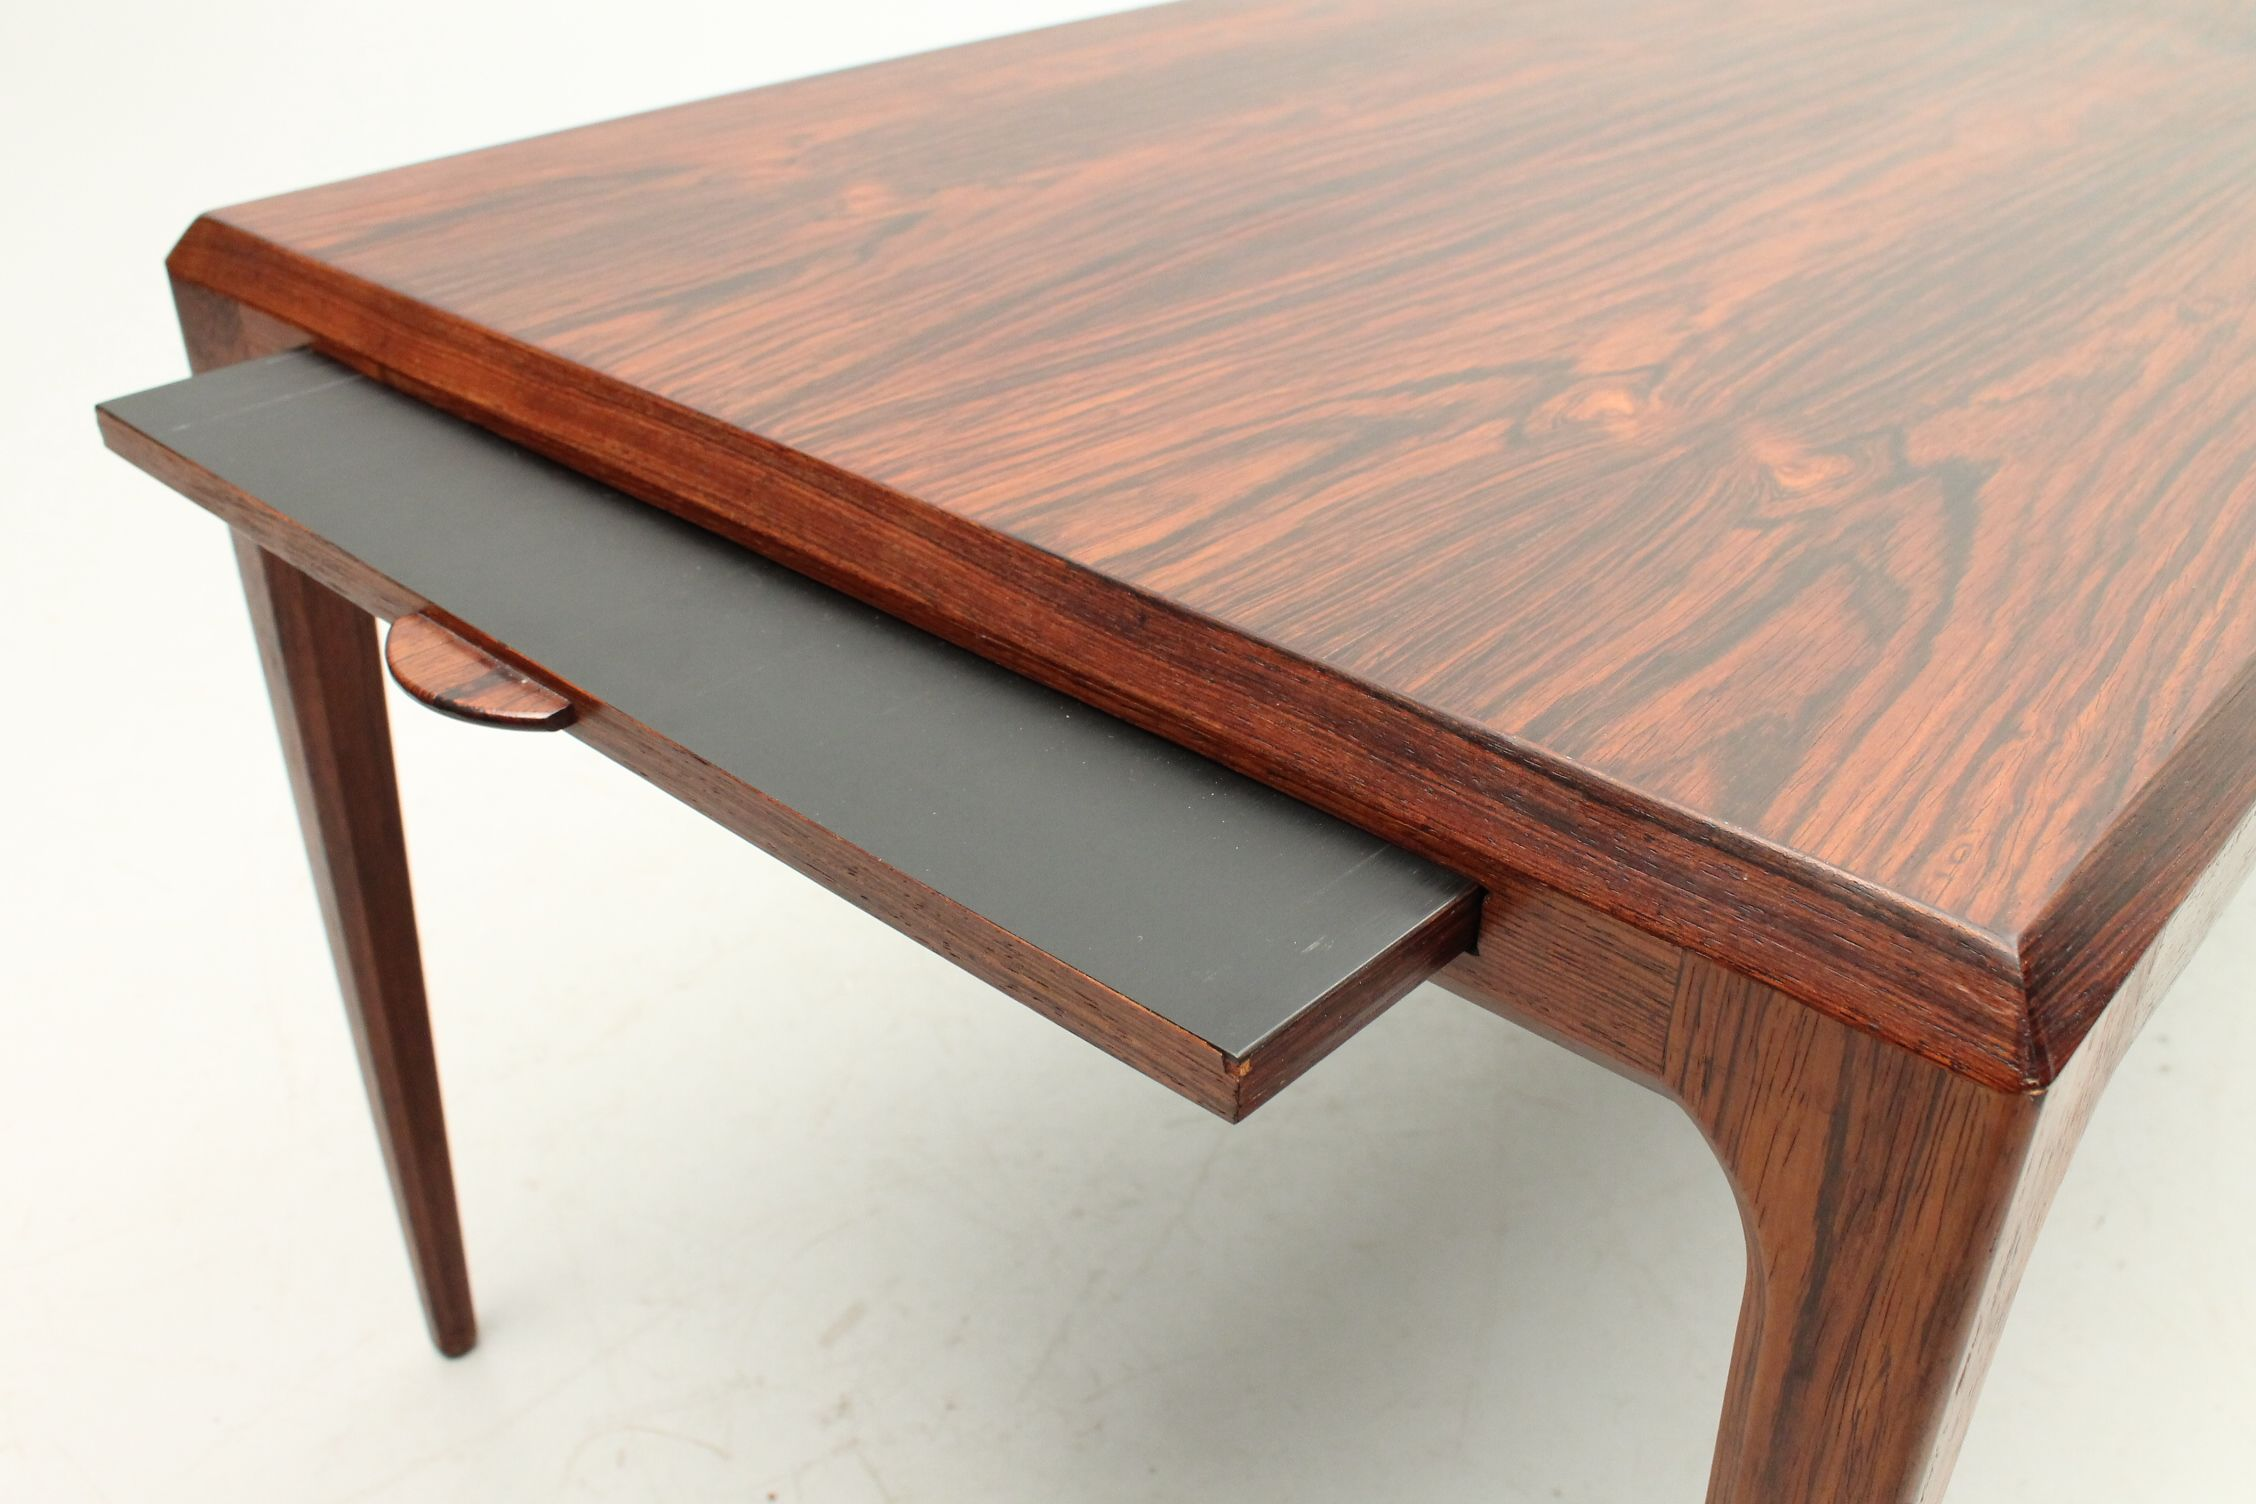 Detail of the formica extension on a coffee table in rosewood. Designed by Johs. Andersen and produced by CFC Silkeborg, Denmark. www.reModern.dk